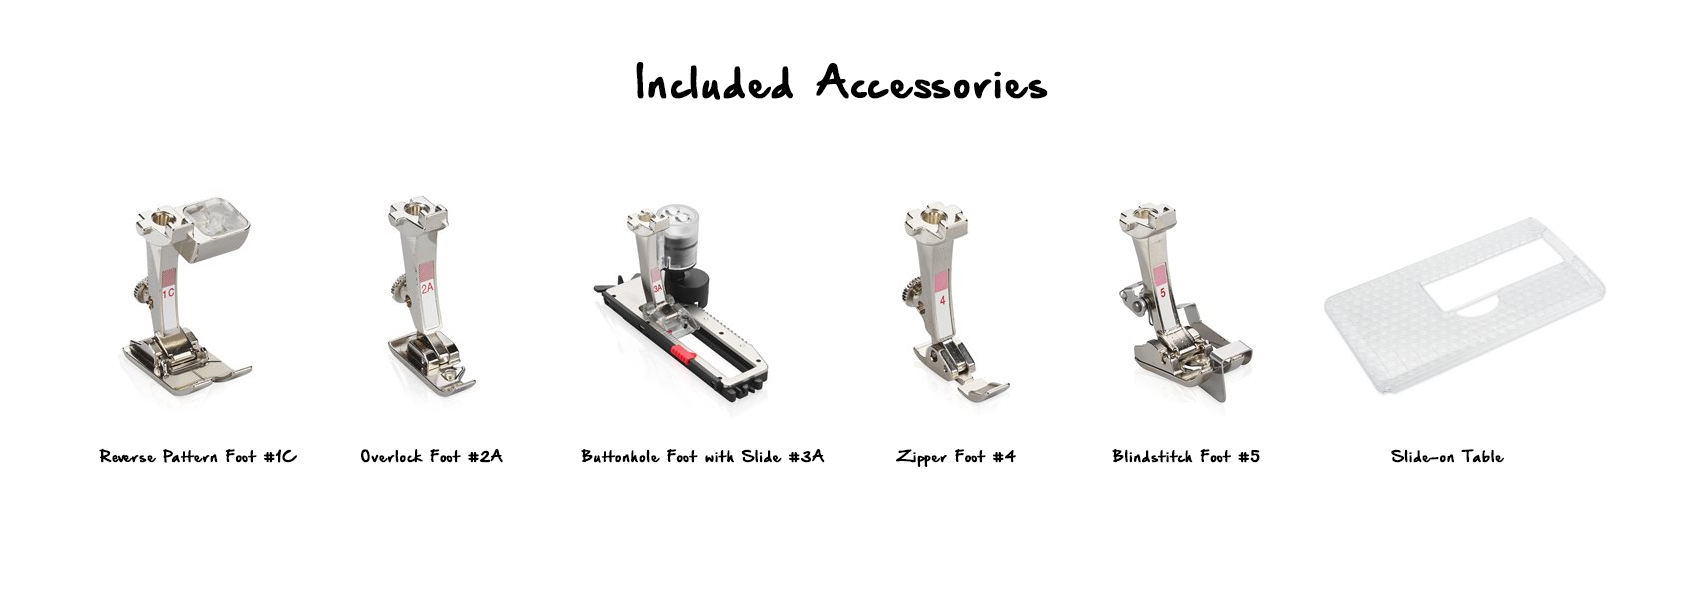 480-included-accessories.jpg